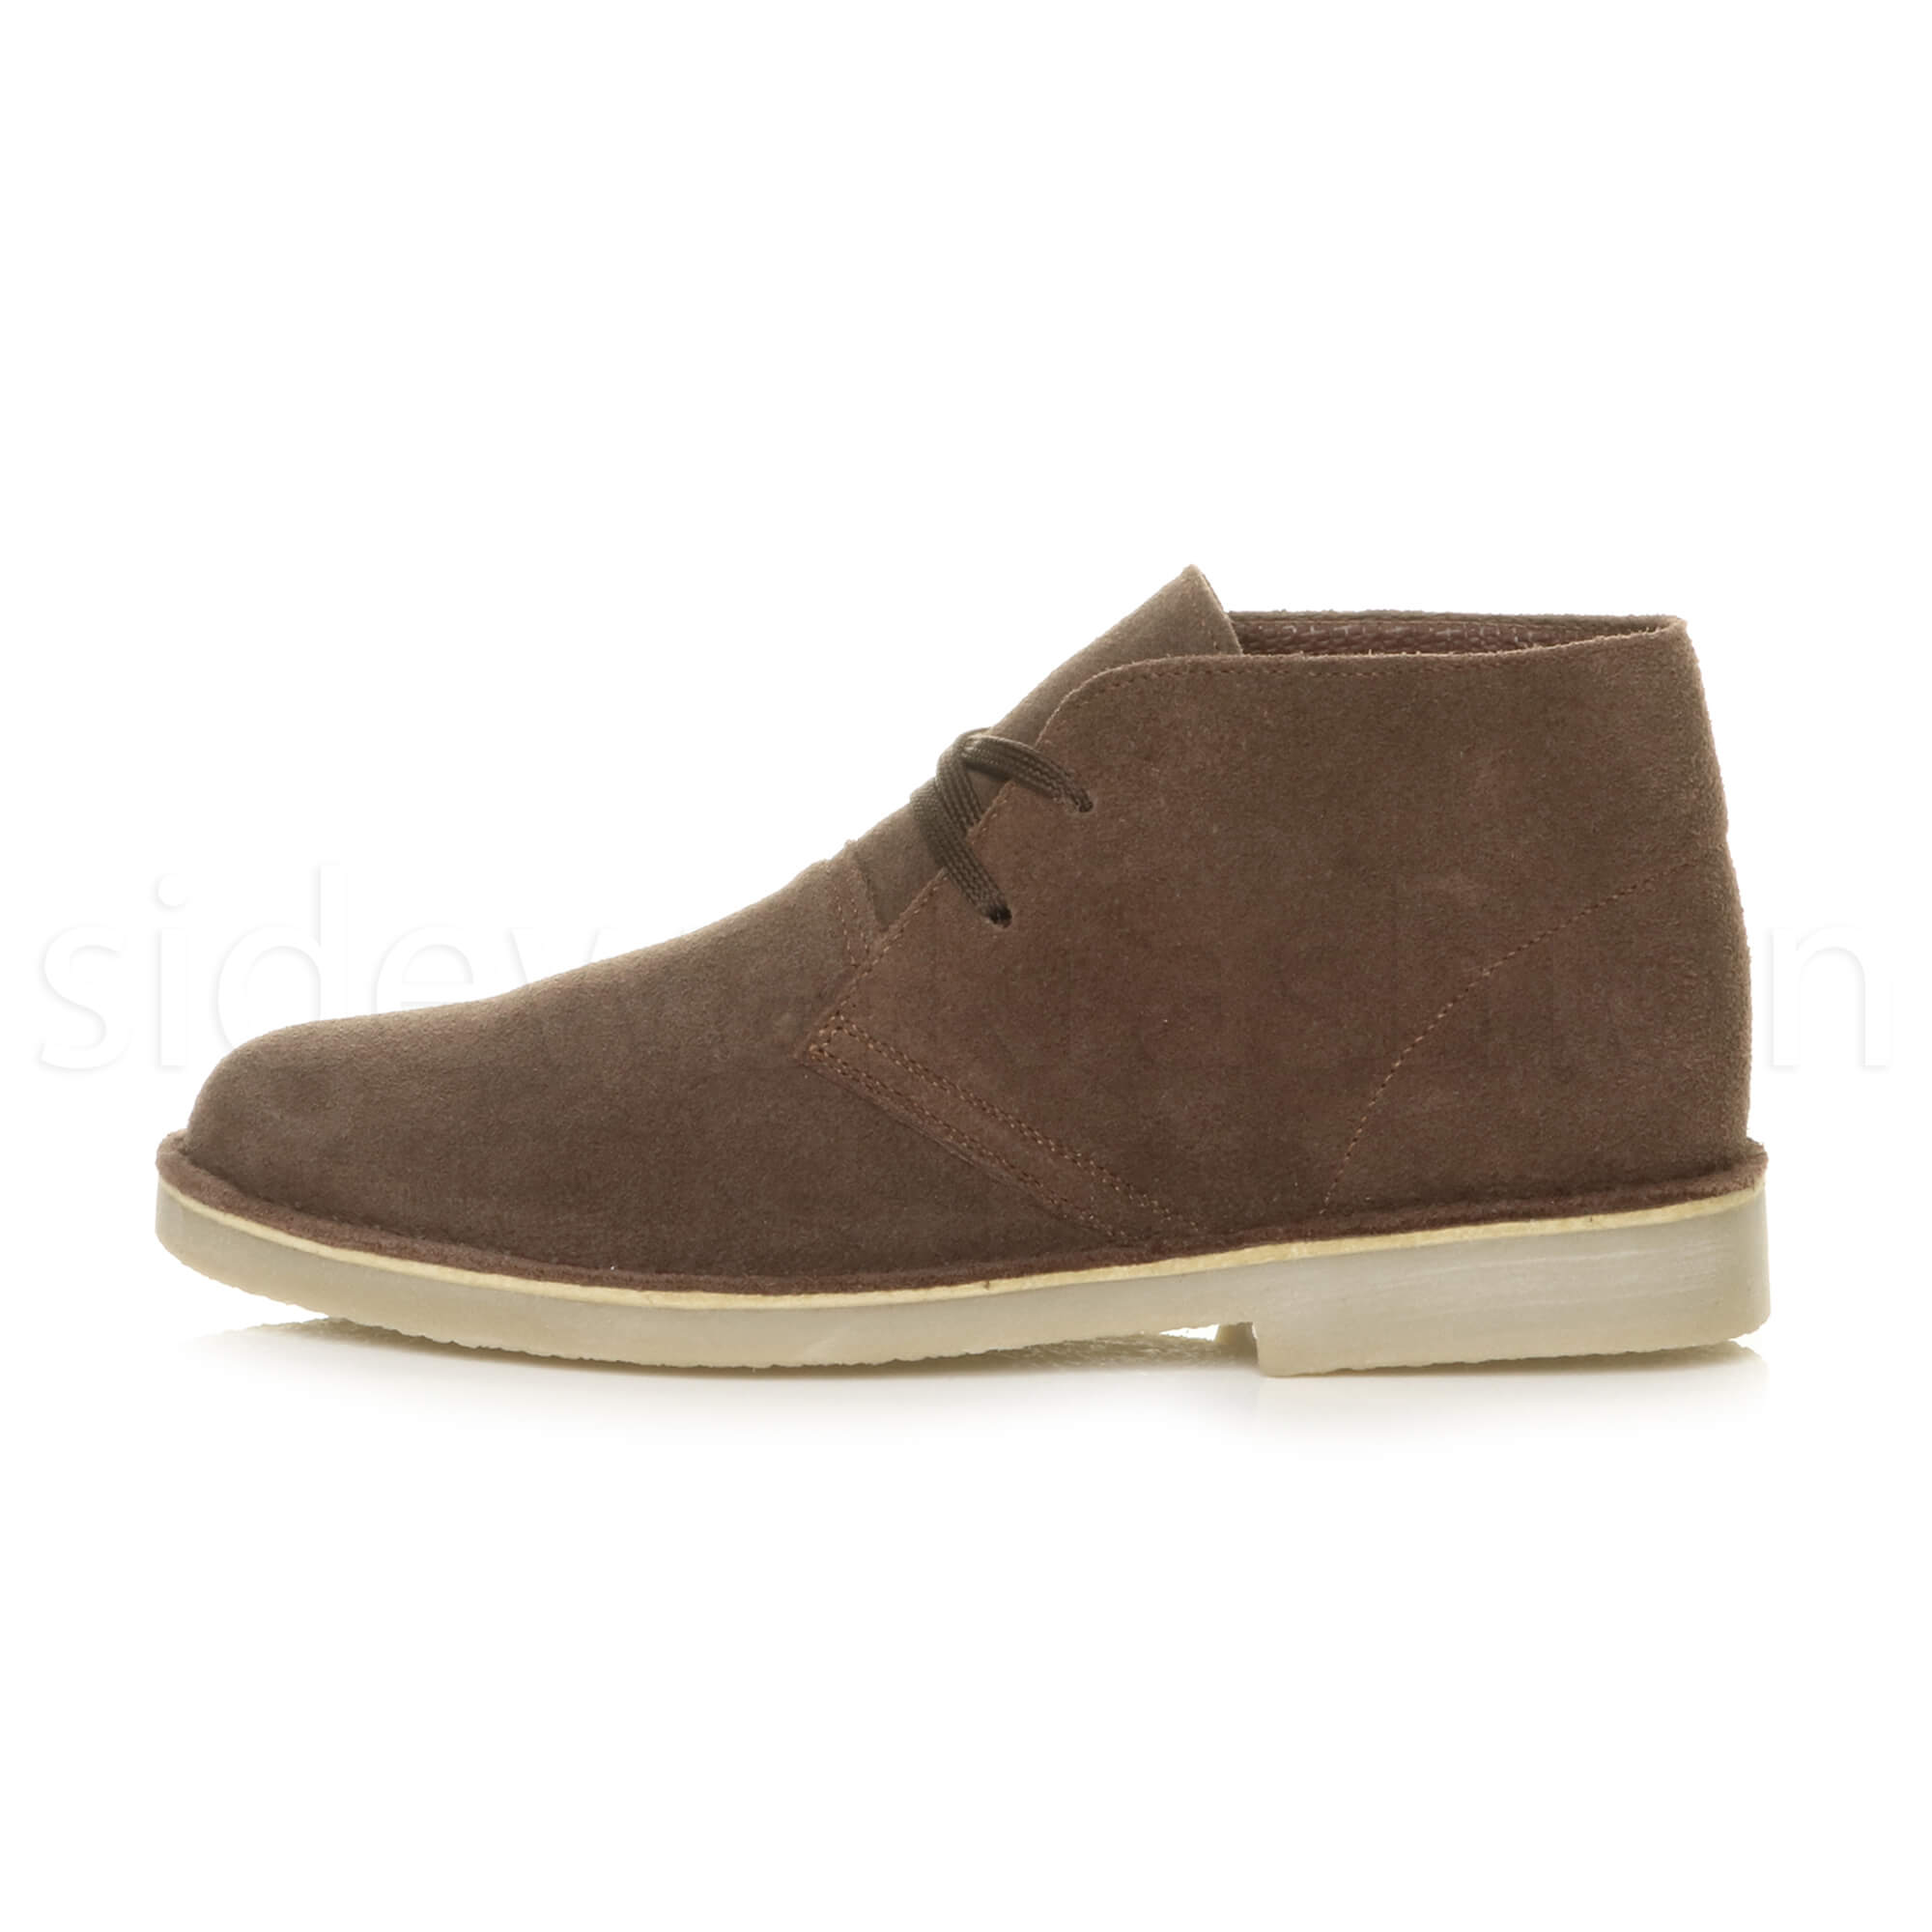 Mens-lace-up-rubber-sole-suede-ankle-chukka-desert-boots-classic-shoes-size thumbnail 10